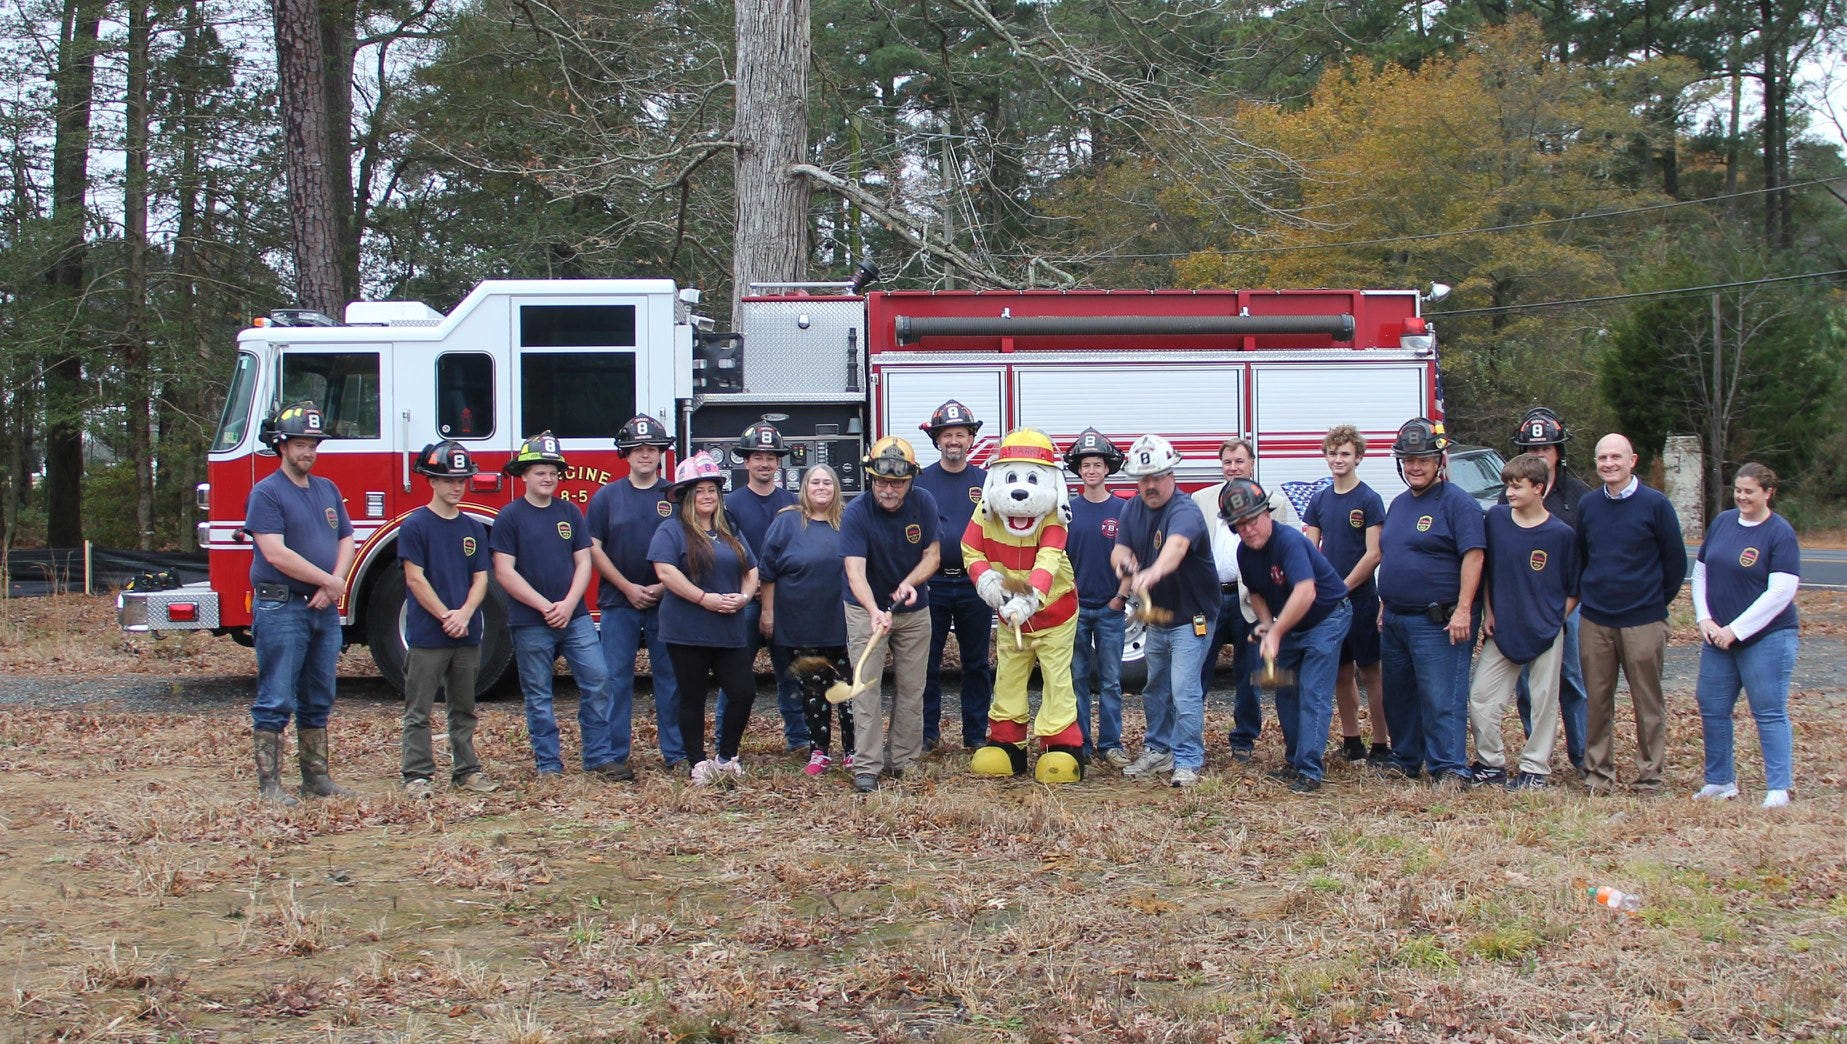 The Tasley Vol. Fire Company broke ground for its new fire station on Sunday, Dec. 2, 2018.